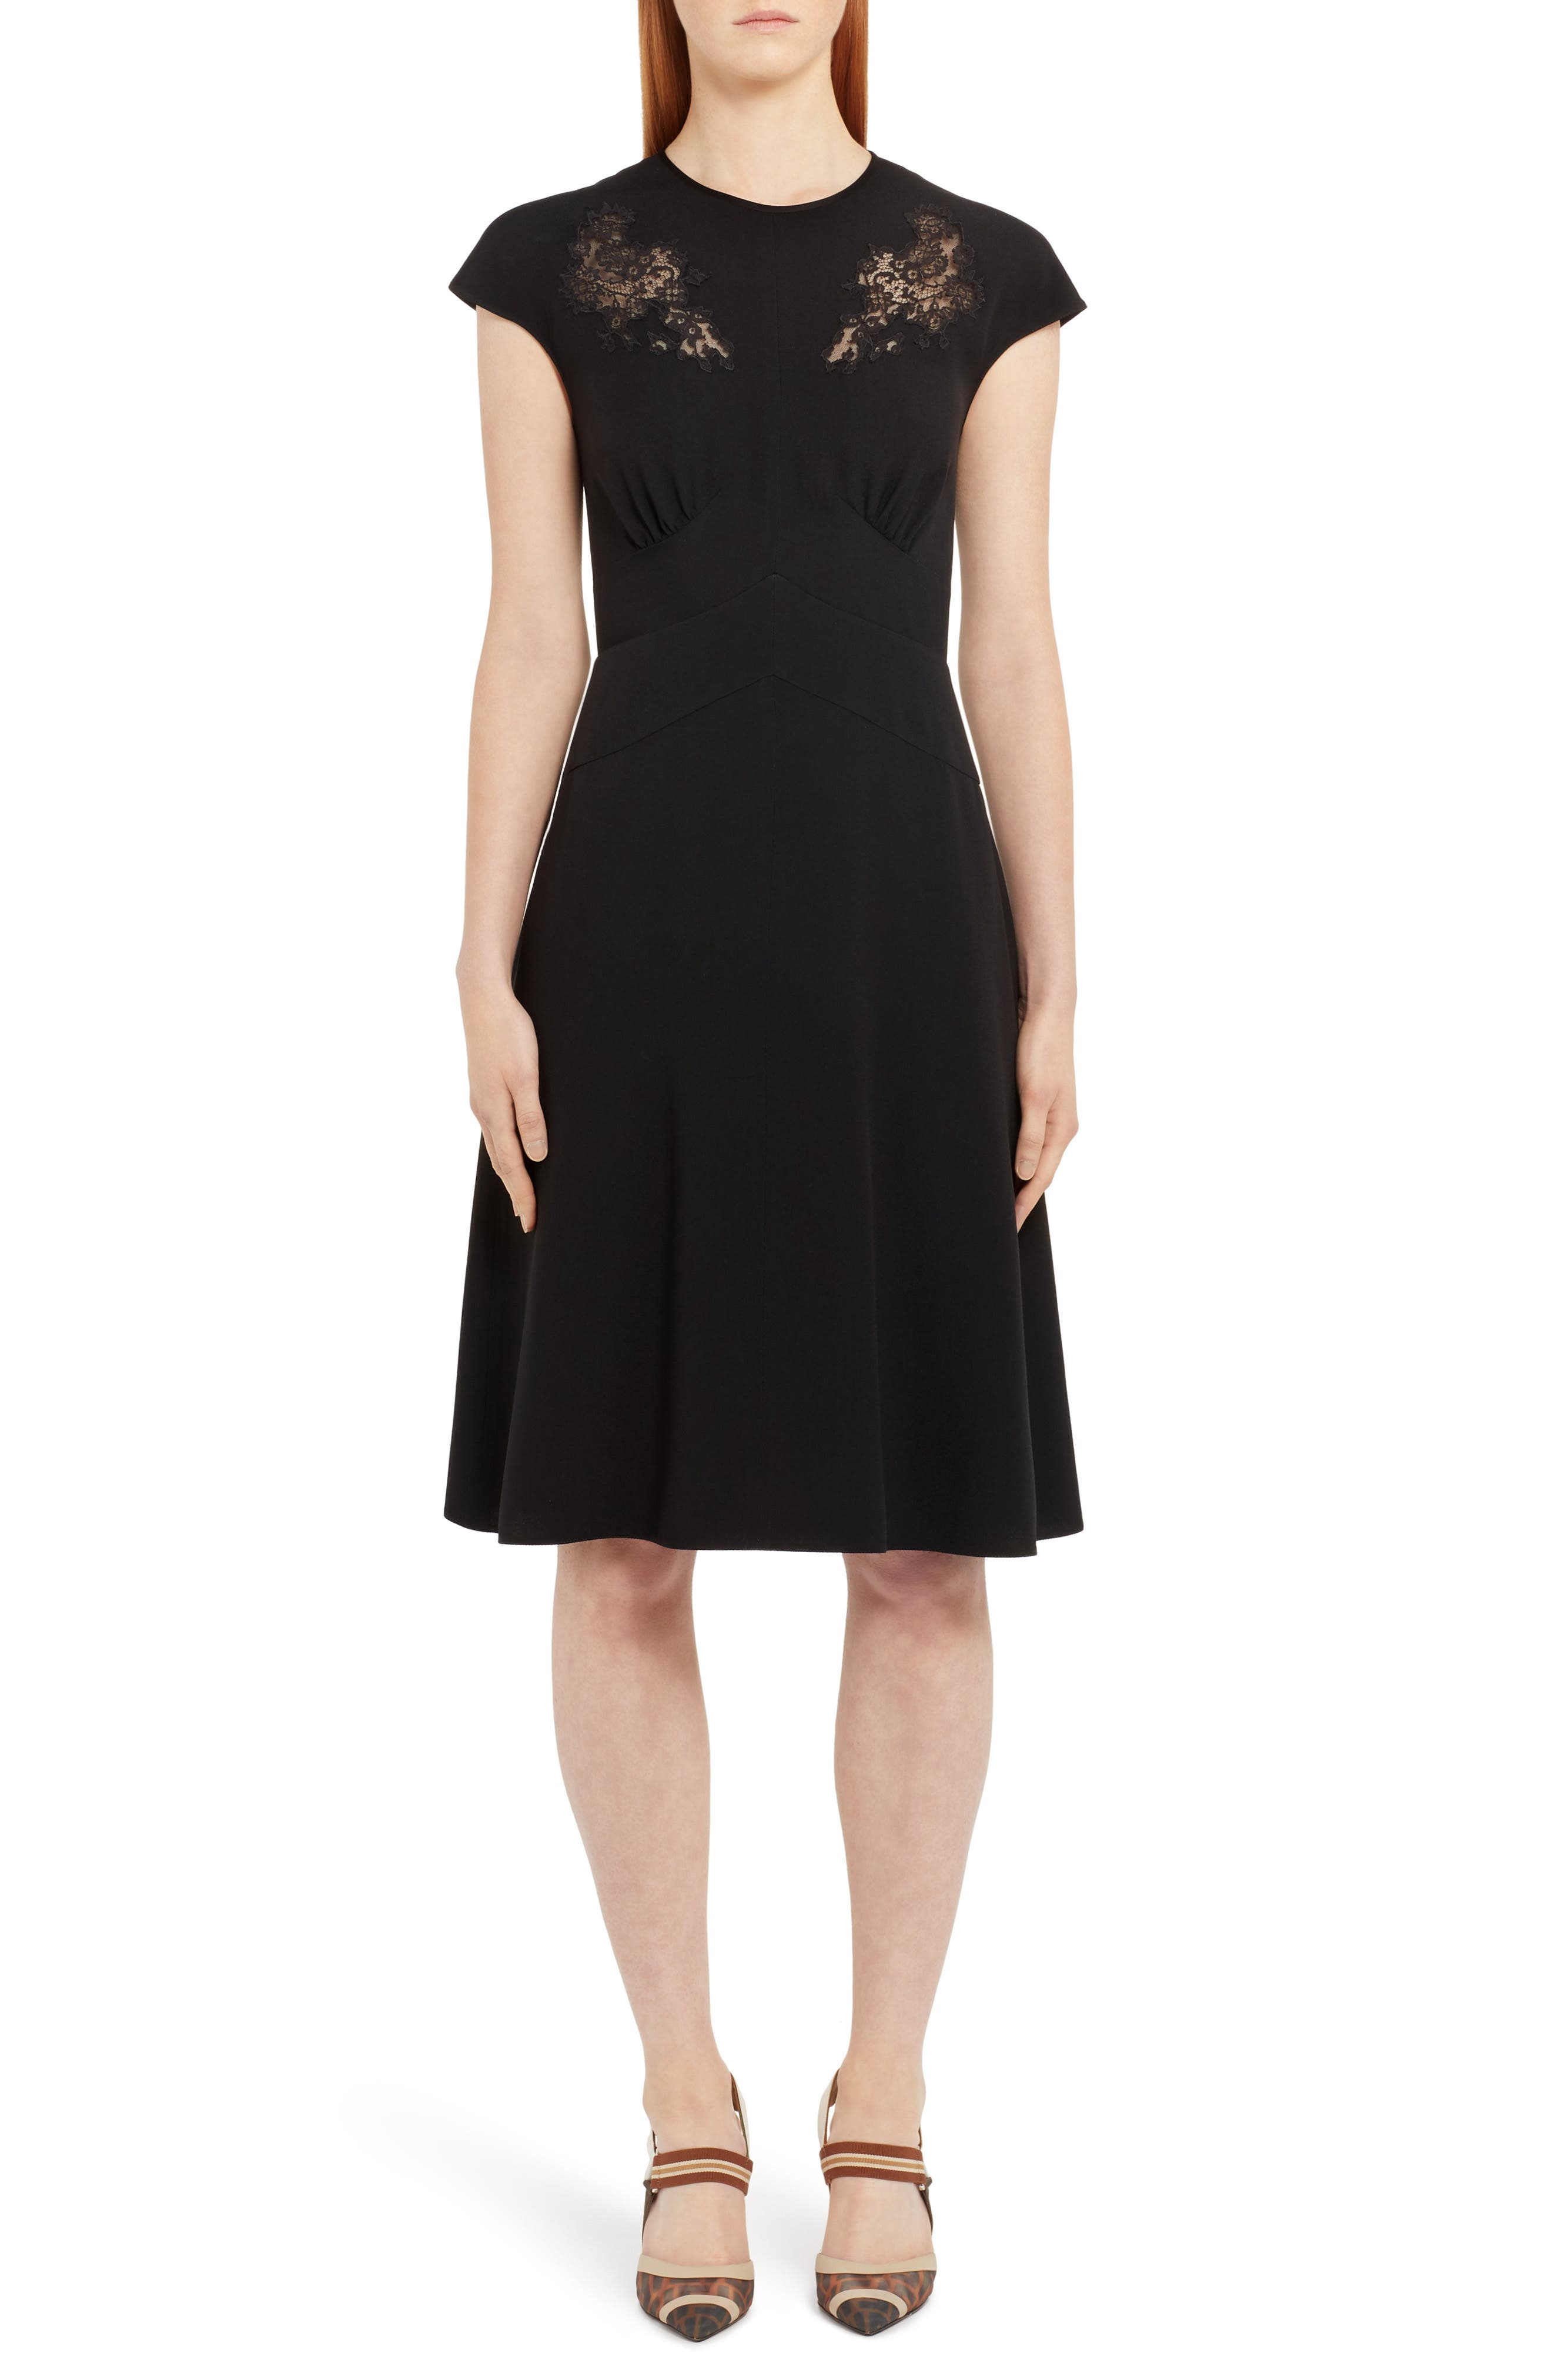 Fendi Lace Inset A-Line Dress, 50 IT - Black